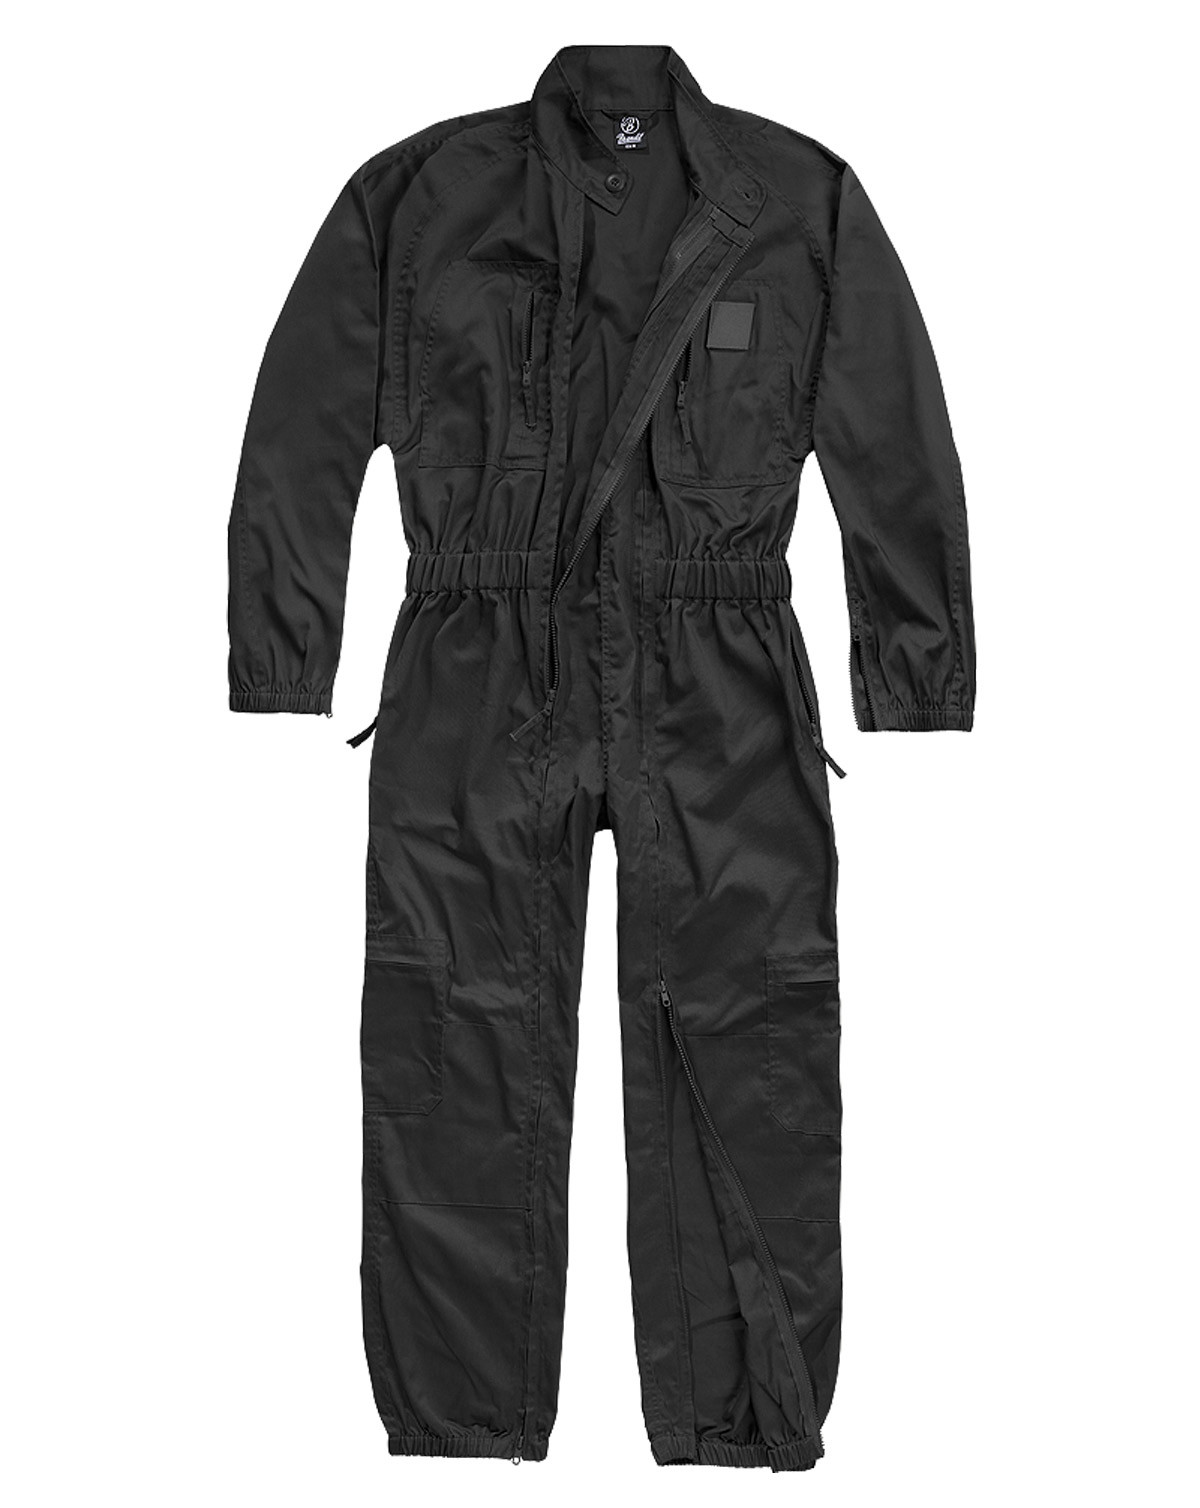 Image of   Brandit Heldragt - Flightsuit u. Foer (Sort, 4XL)